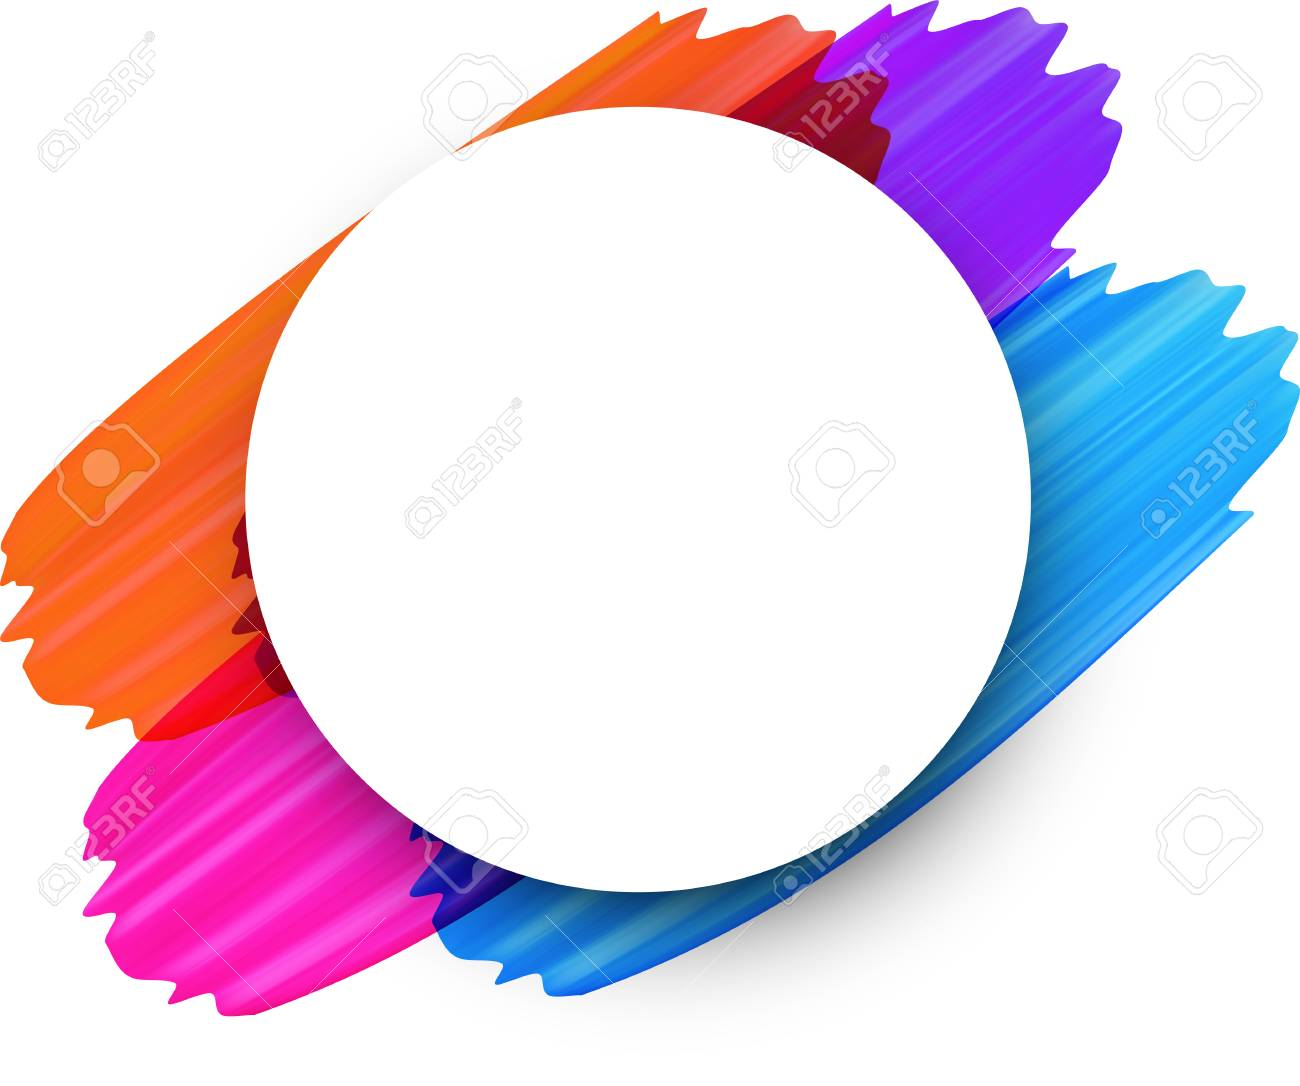 White round background with colorful paint brush strokes. Vector illustration. - 99000044